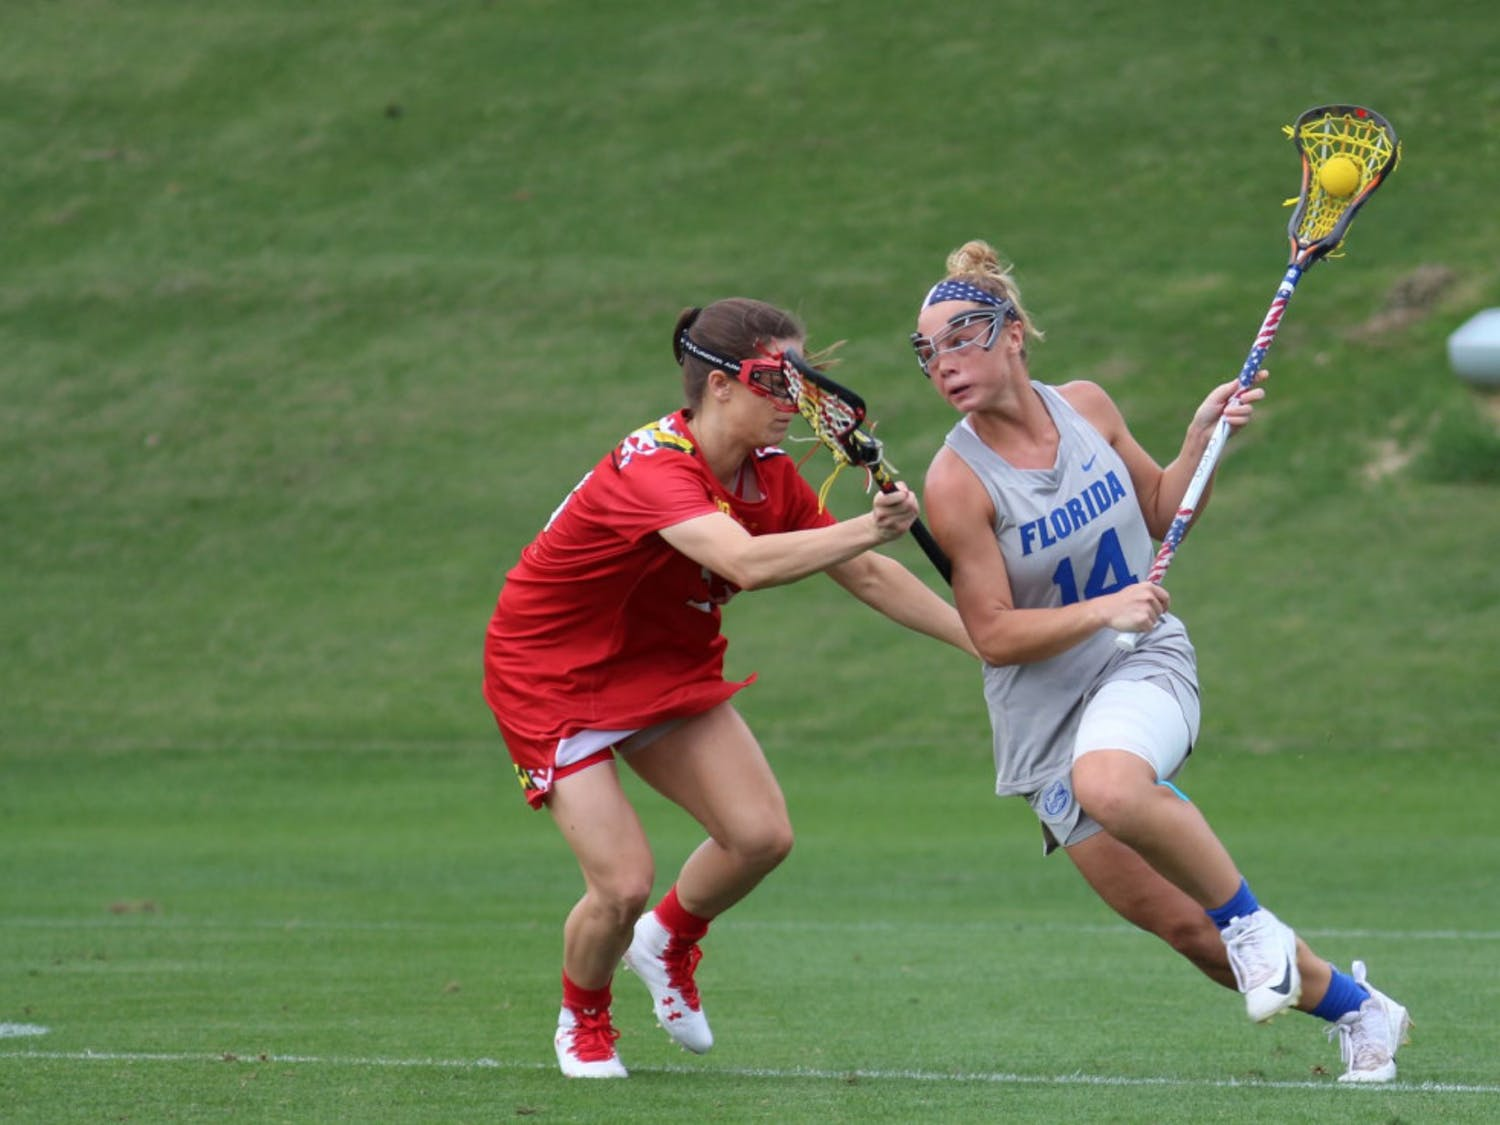 Florida attacker Lindsey Ronbeck scored four goals during UF's 16-9 road win over Colorado.